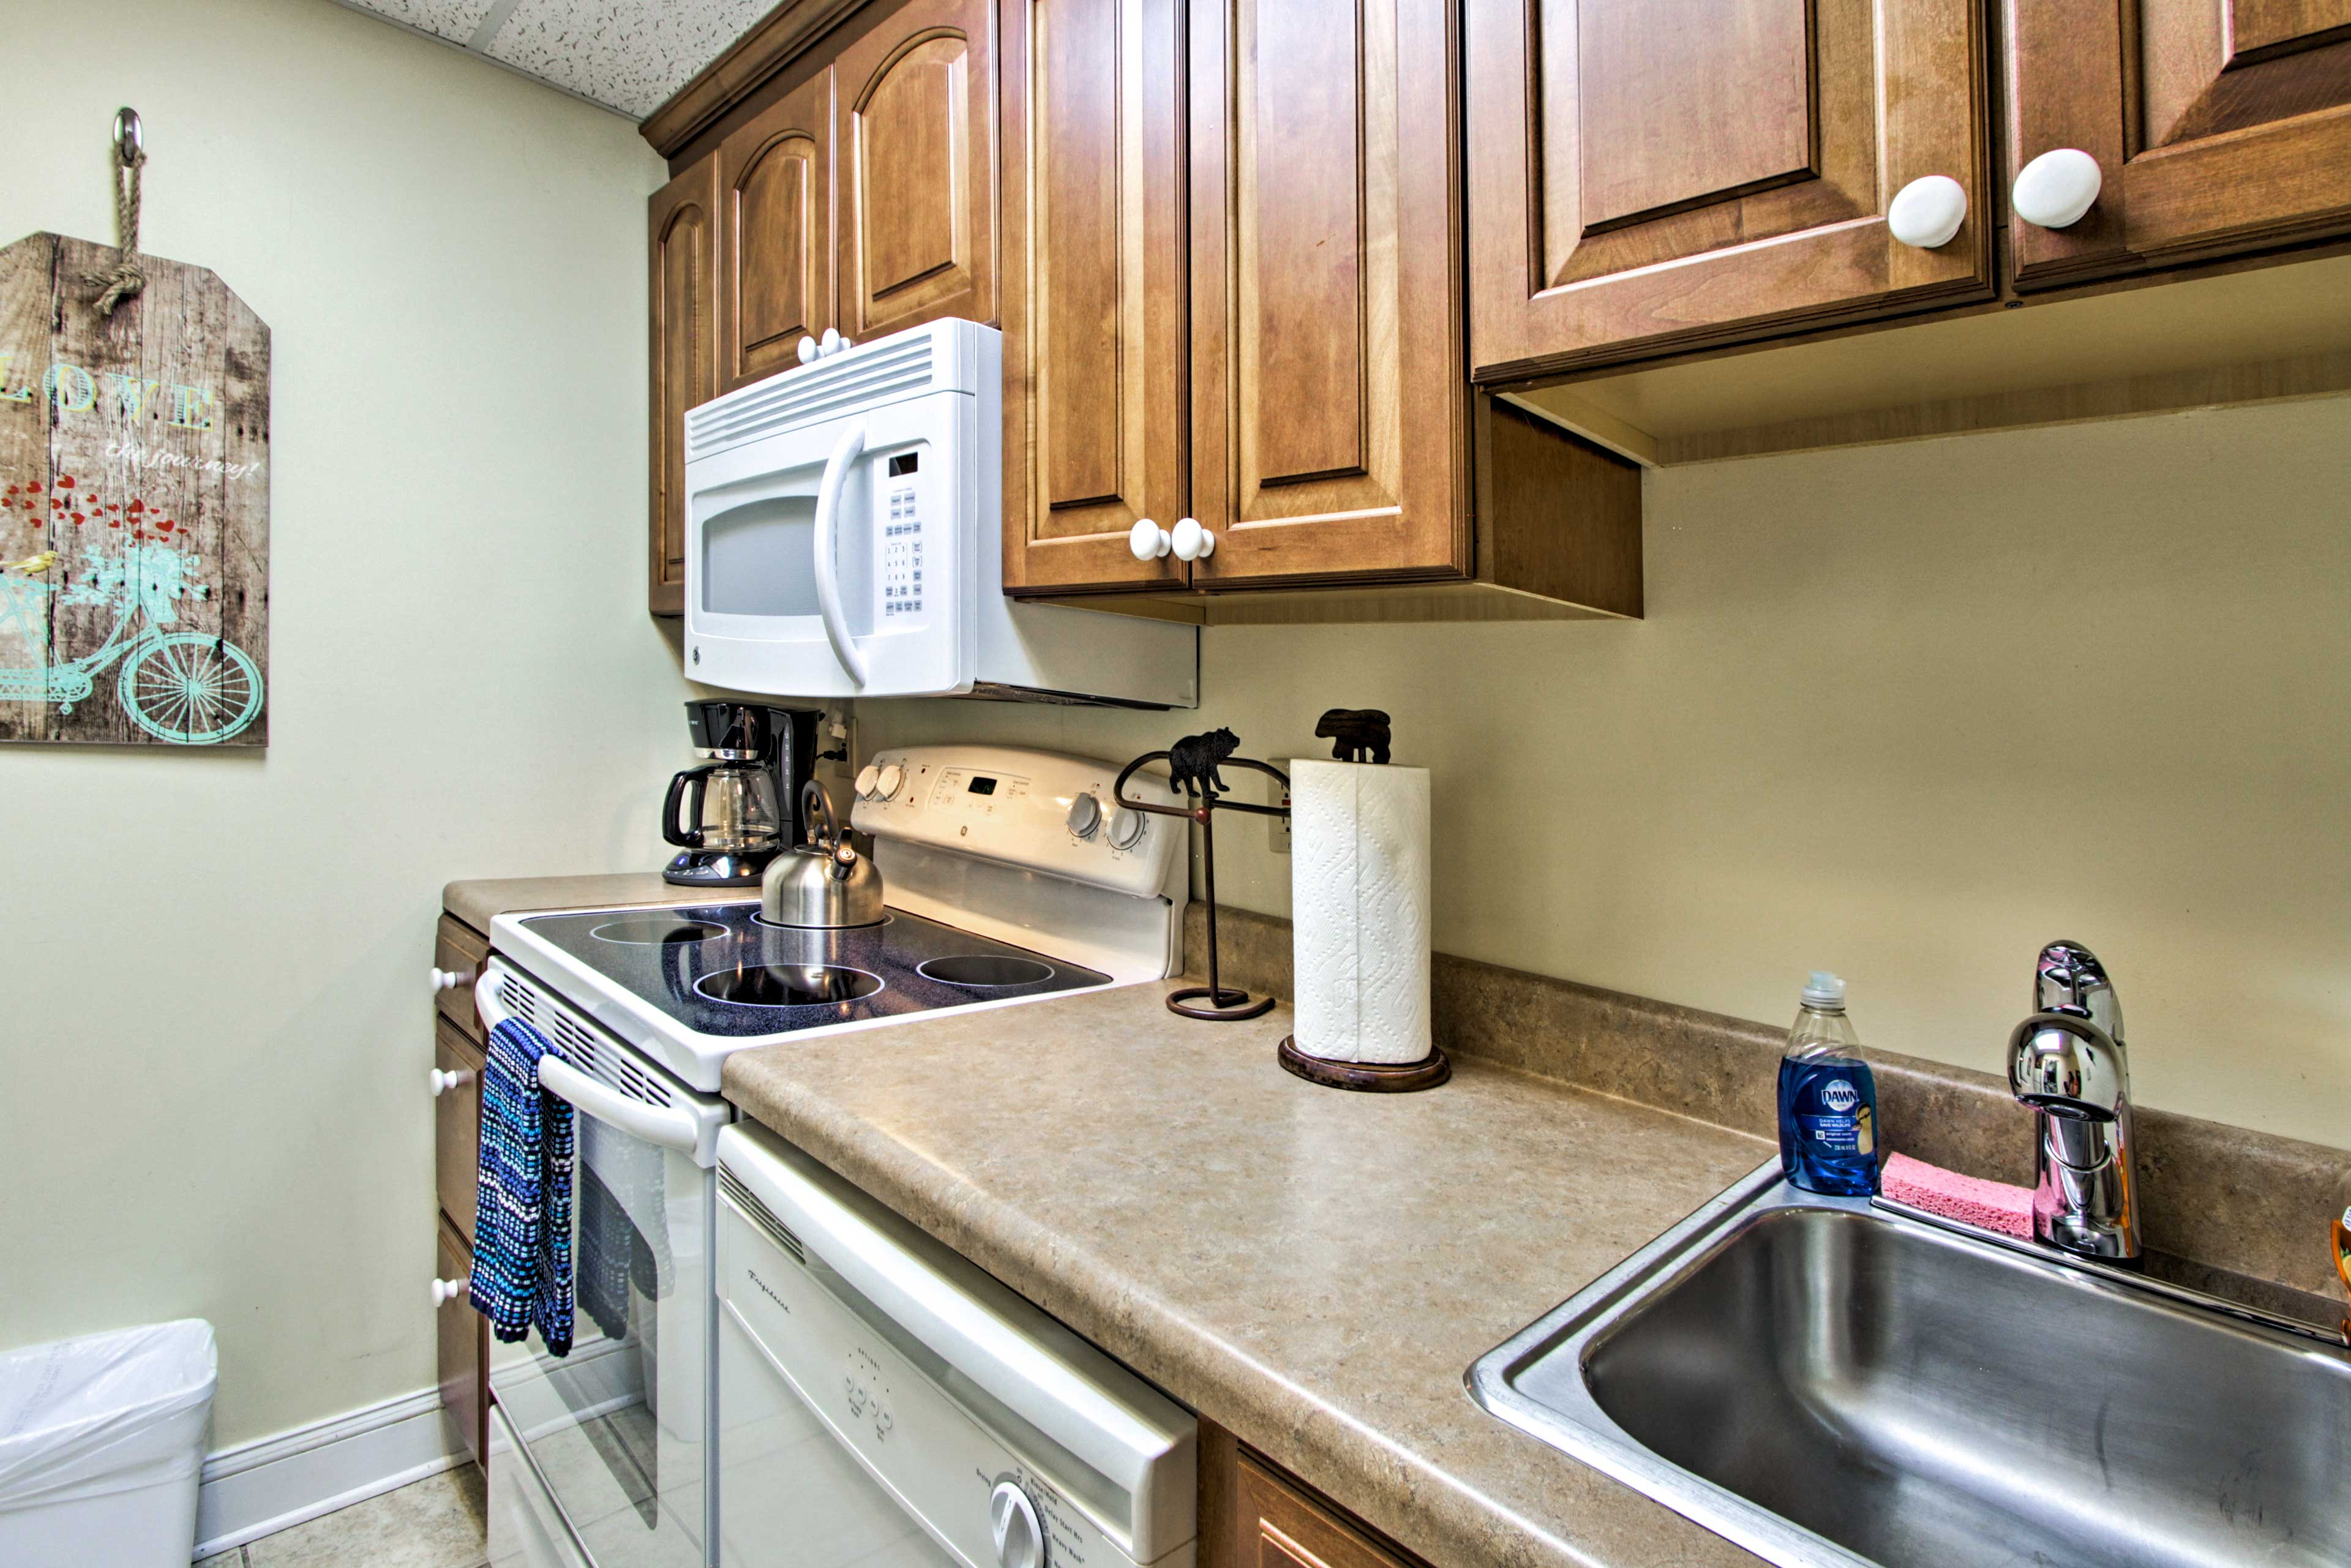 Practice your cooking skills in this fully equipped kitchen.